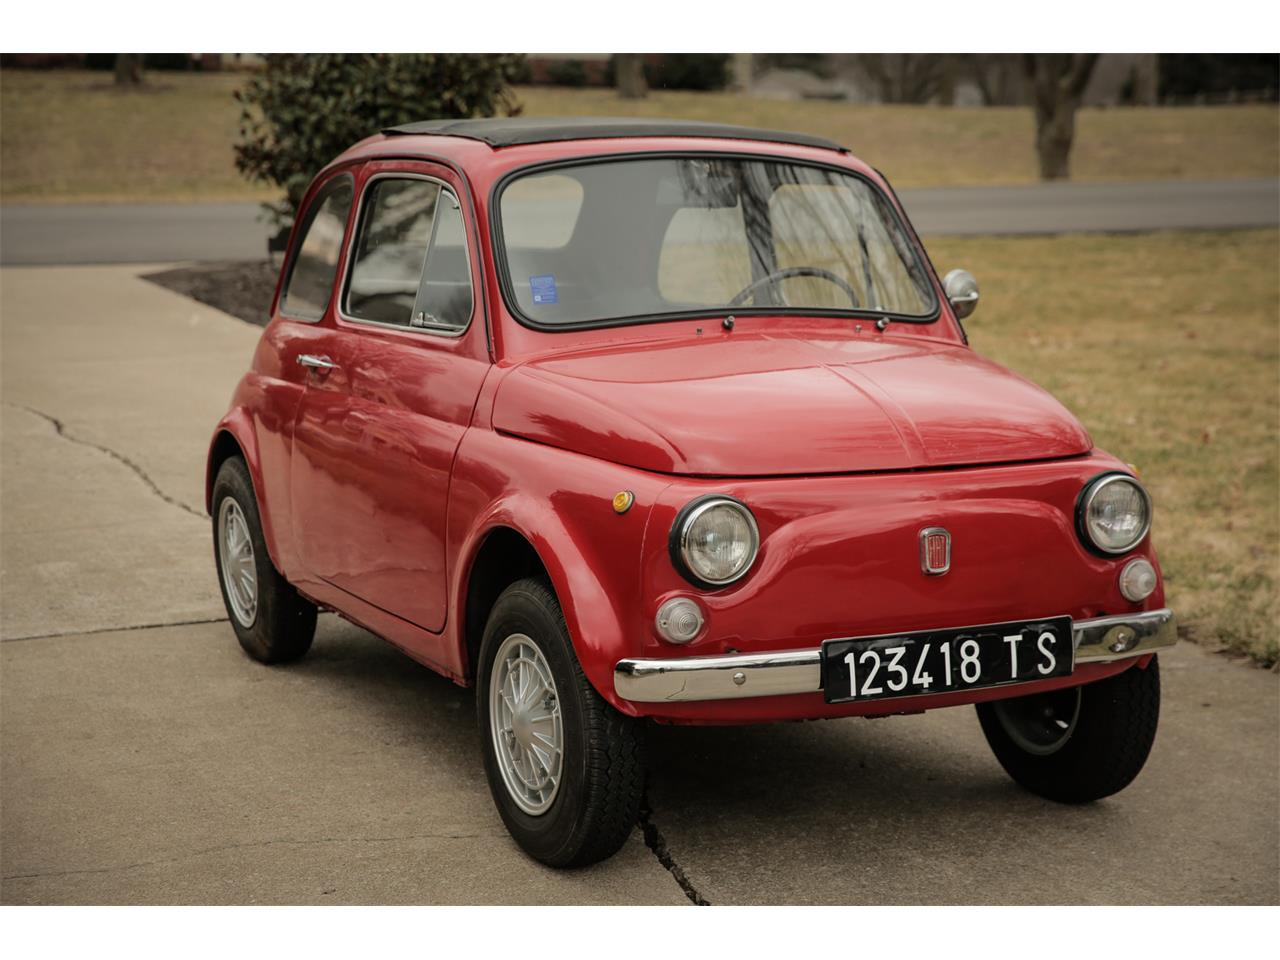 Large Picture of Classic 1970 Fiat 500 located in Olathe Kansas - $15,500.00 Offered by a Private Seller - H5C0